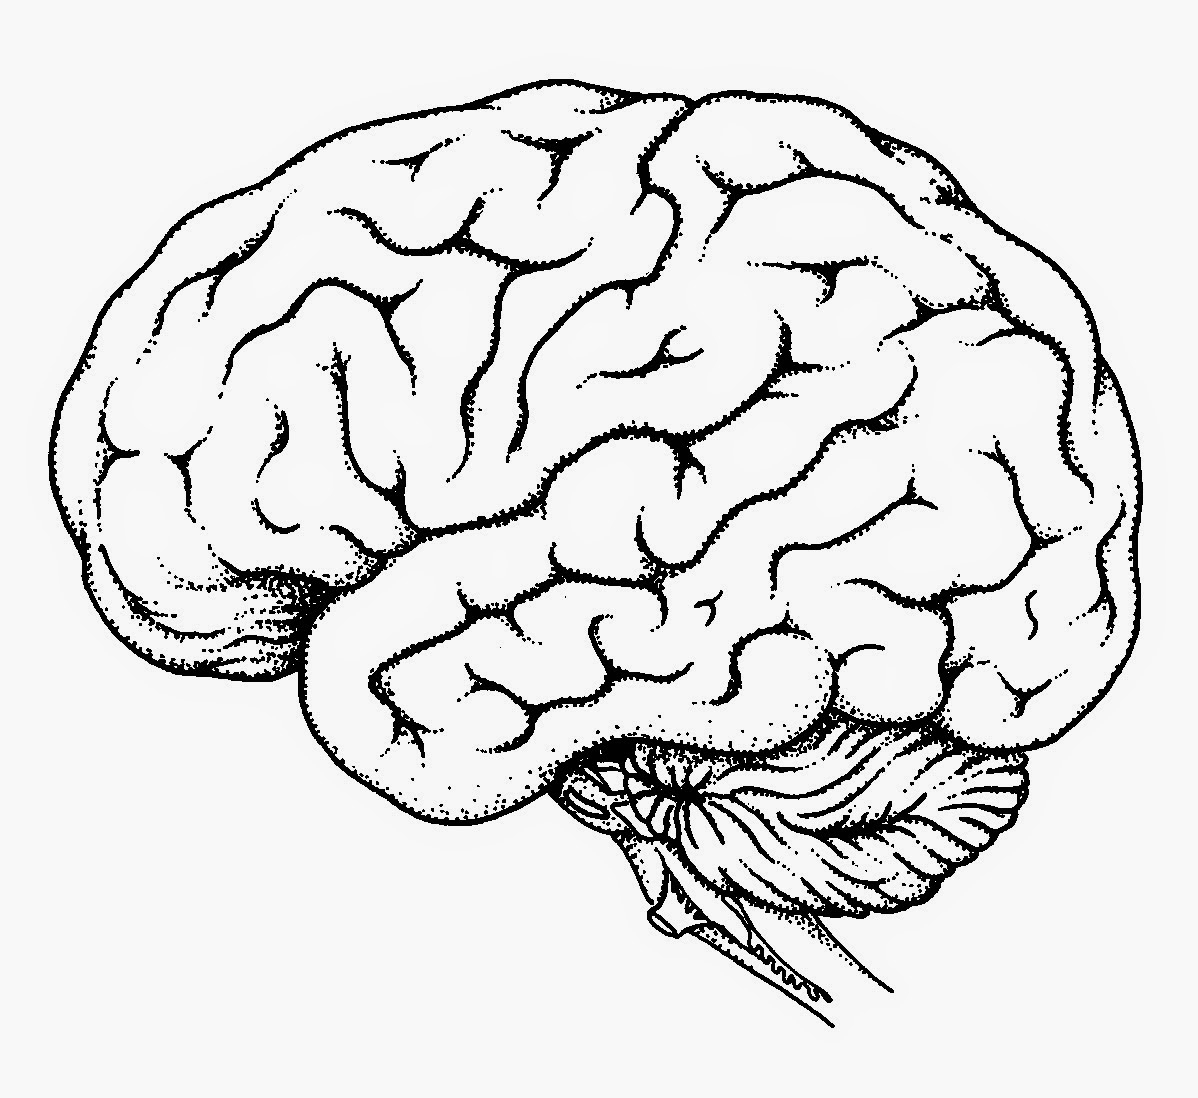 1198x1098 Simple Labeled Pencil Sketch Diagram Of Human Brain Drawn Brain